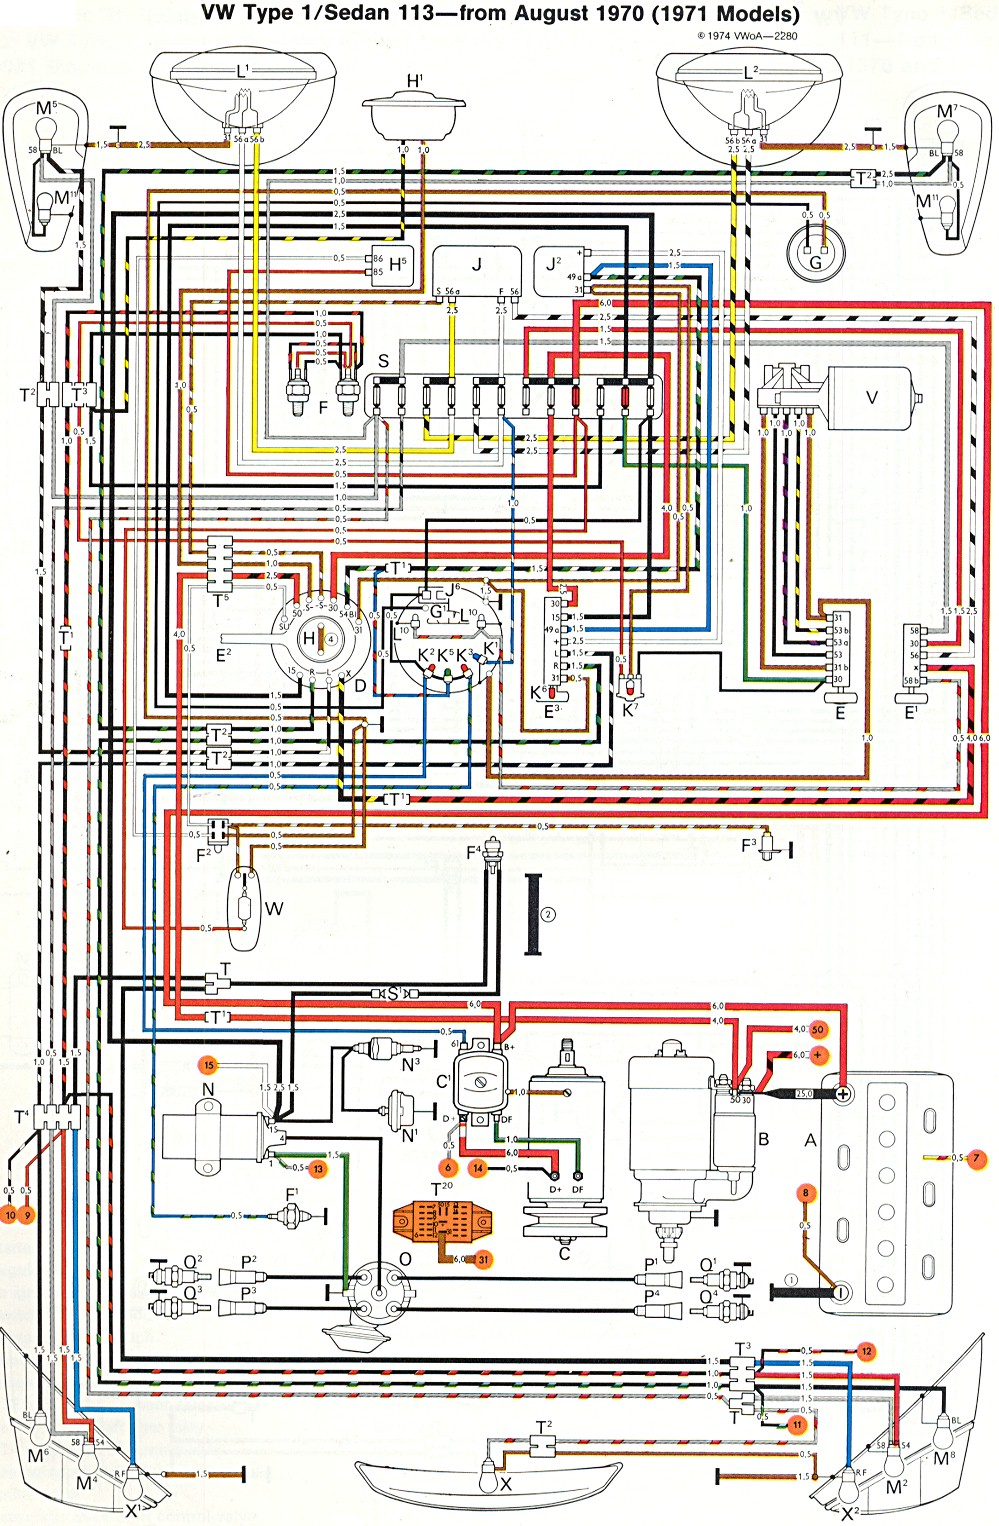 1972 Super Beetle Wiring Harness Electronic Diagrams For Dune Buggy Vw Starting Know About Diagram U2022